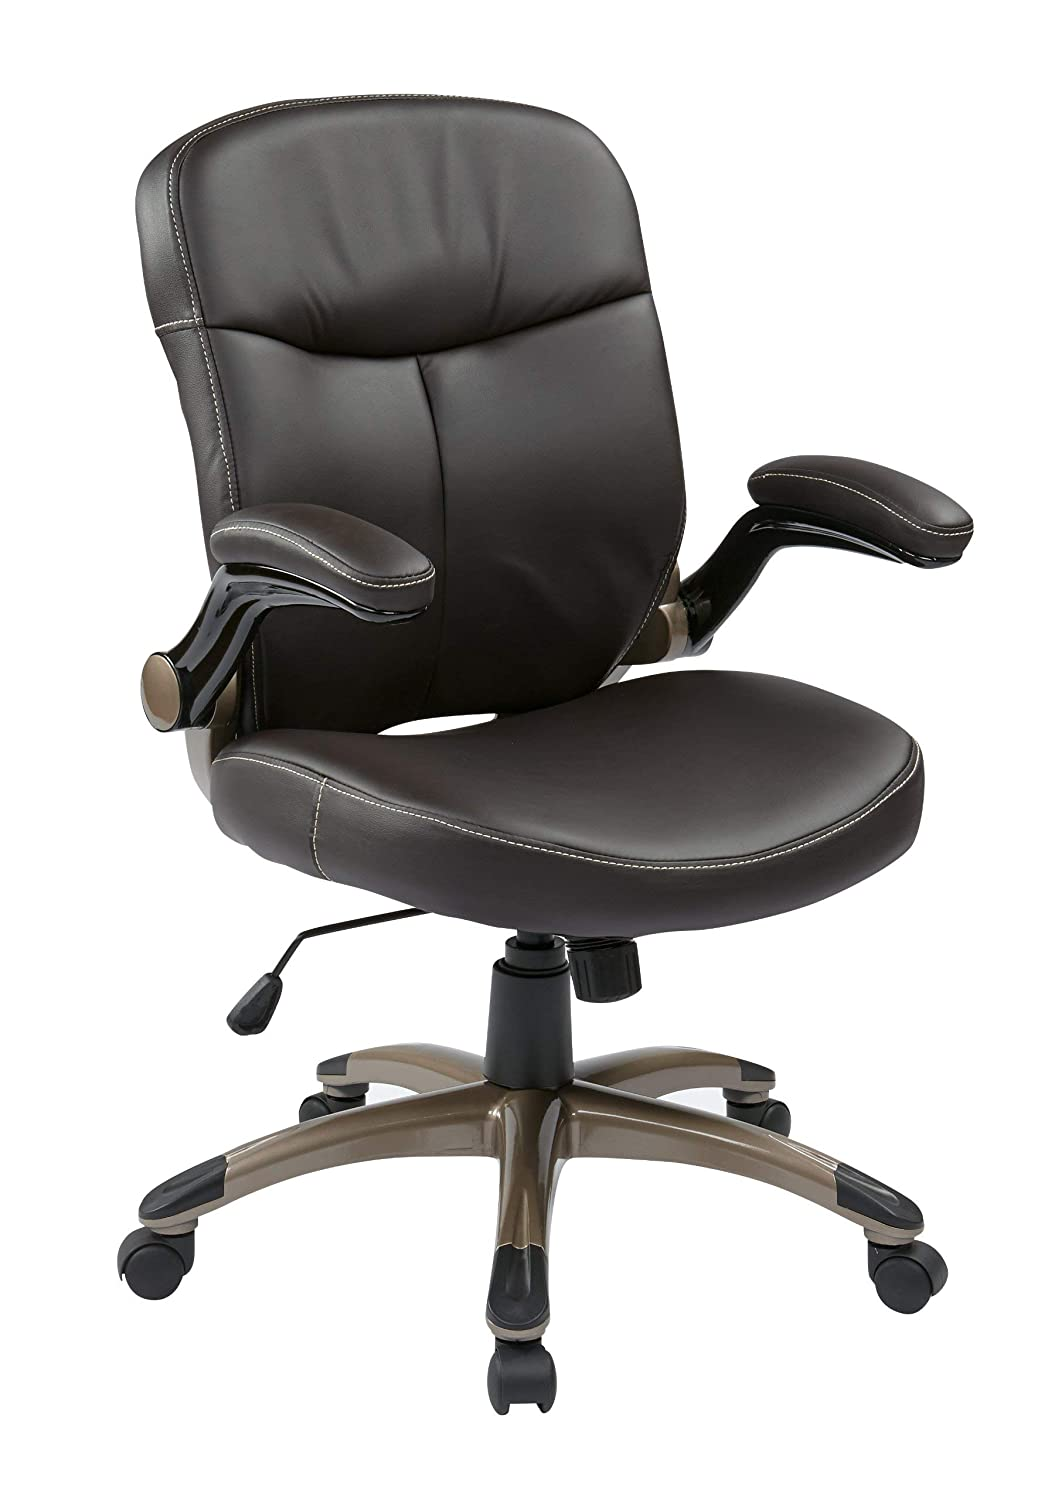 Office Star Mid Back Bonded Leather Executives Chair with Padded Flip Arms and Cocoa Coated Accents, Espresso